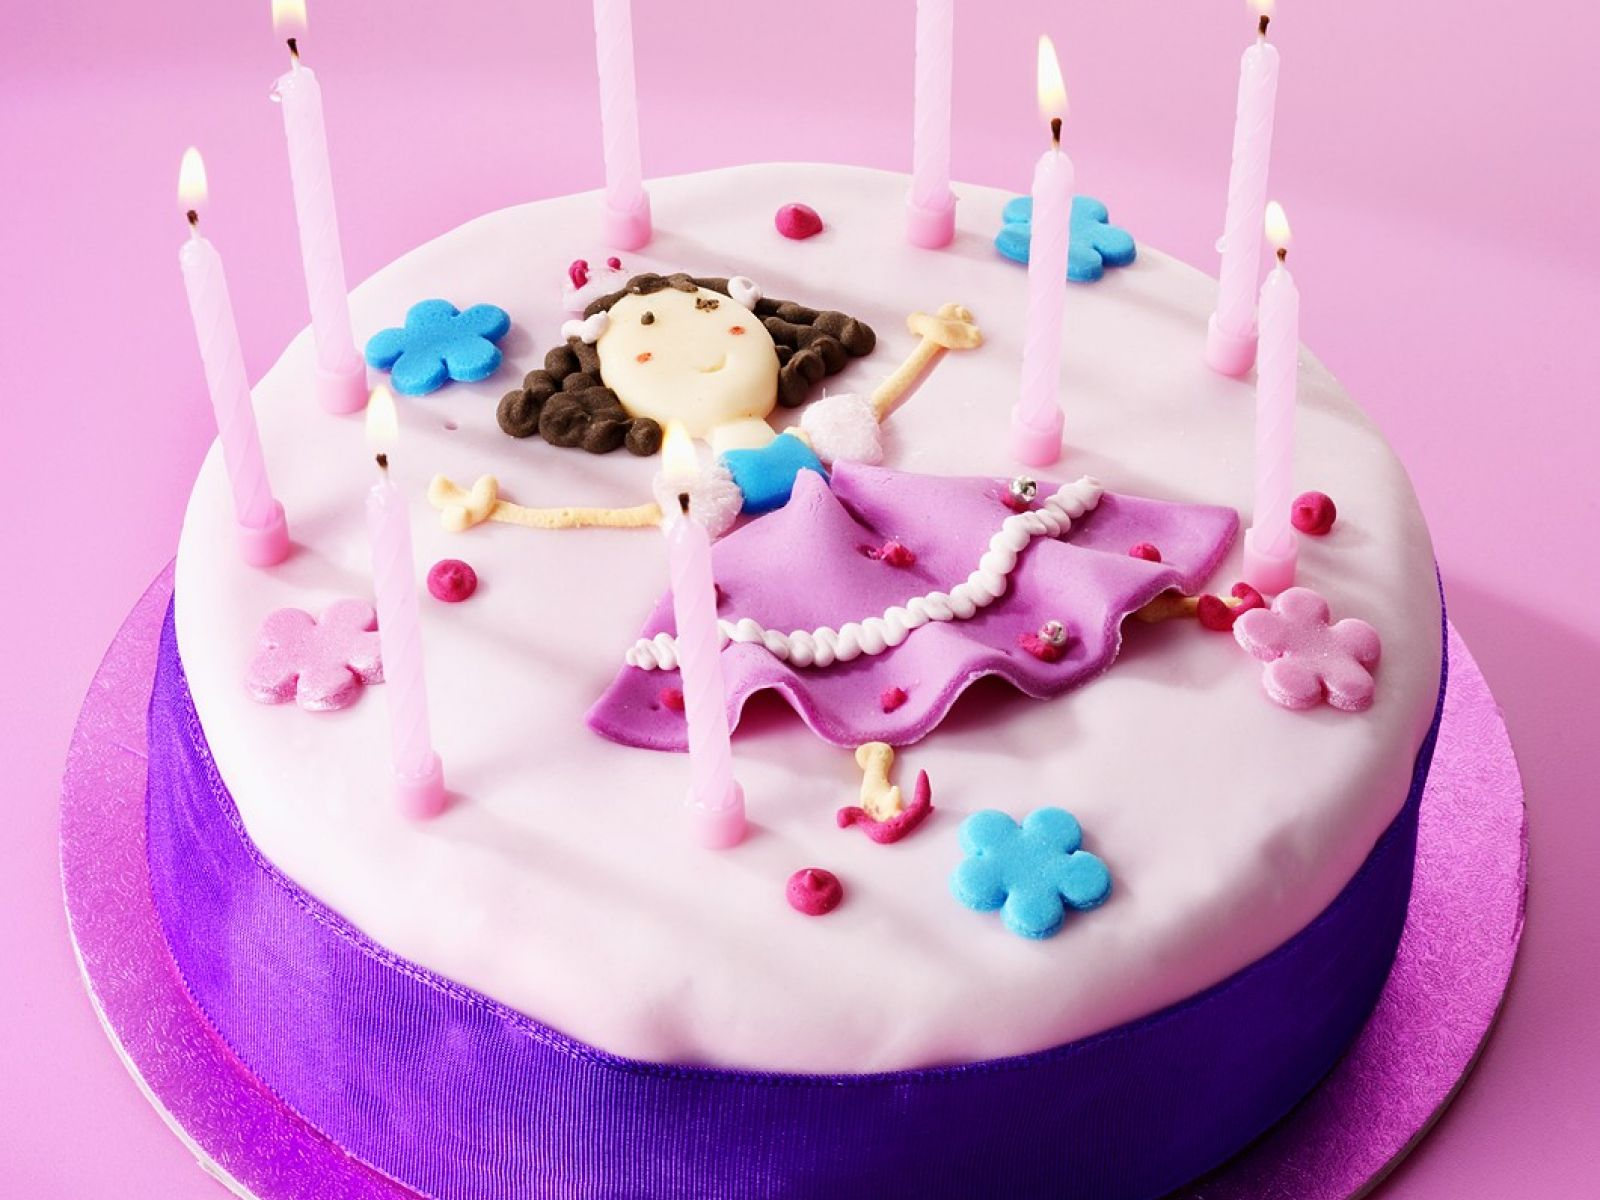 Incredible Girls Birthday Cake With Candles Recipe Eat Smarter Usa Funny Birthday Cards Online Elaedamsfinfo